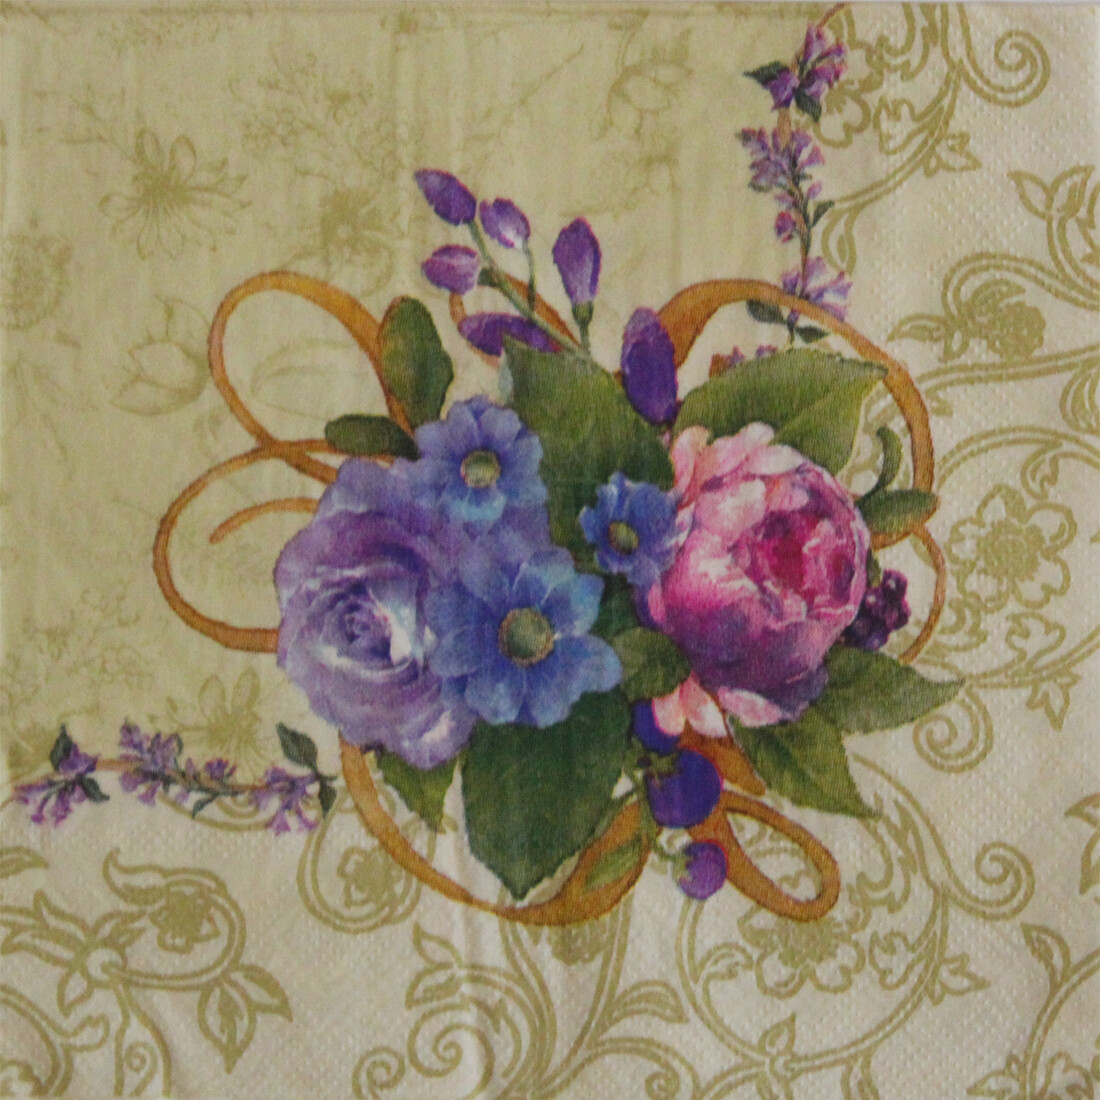 Floral Cream Paper Napkin 13x13 - (Pack of 20)